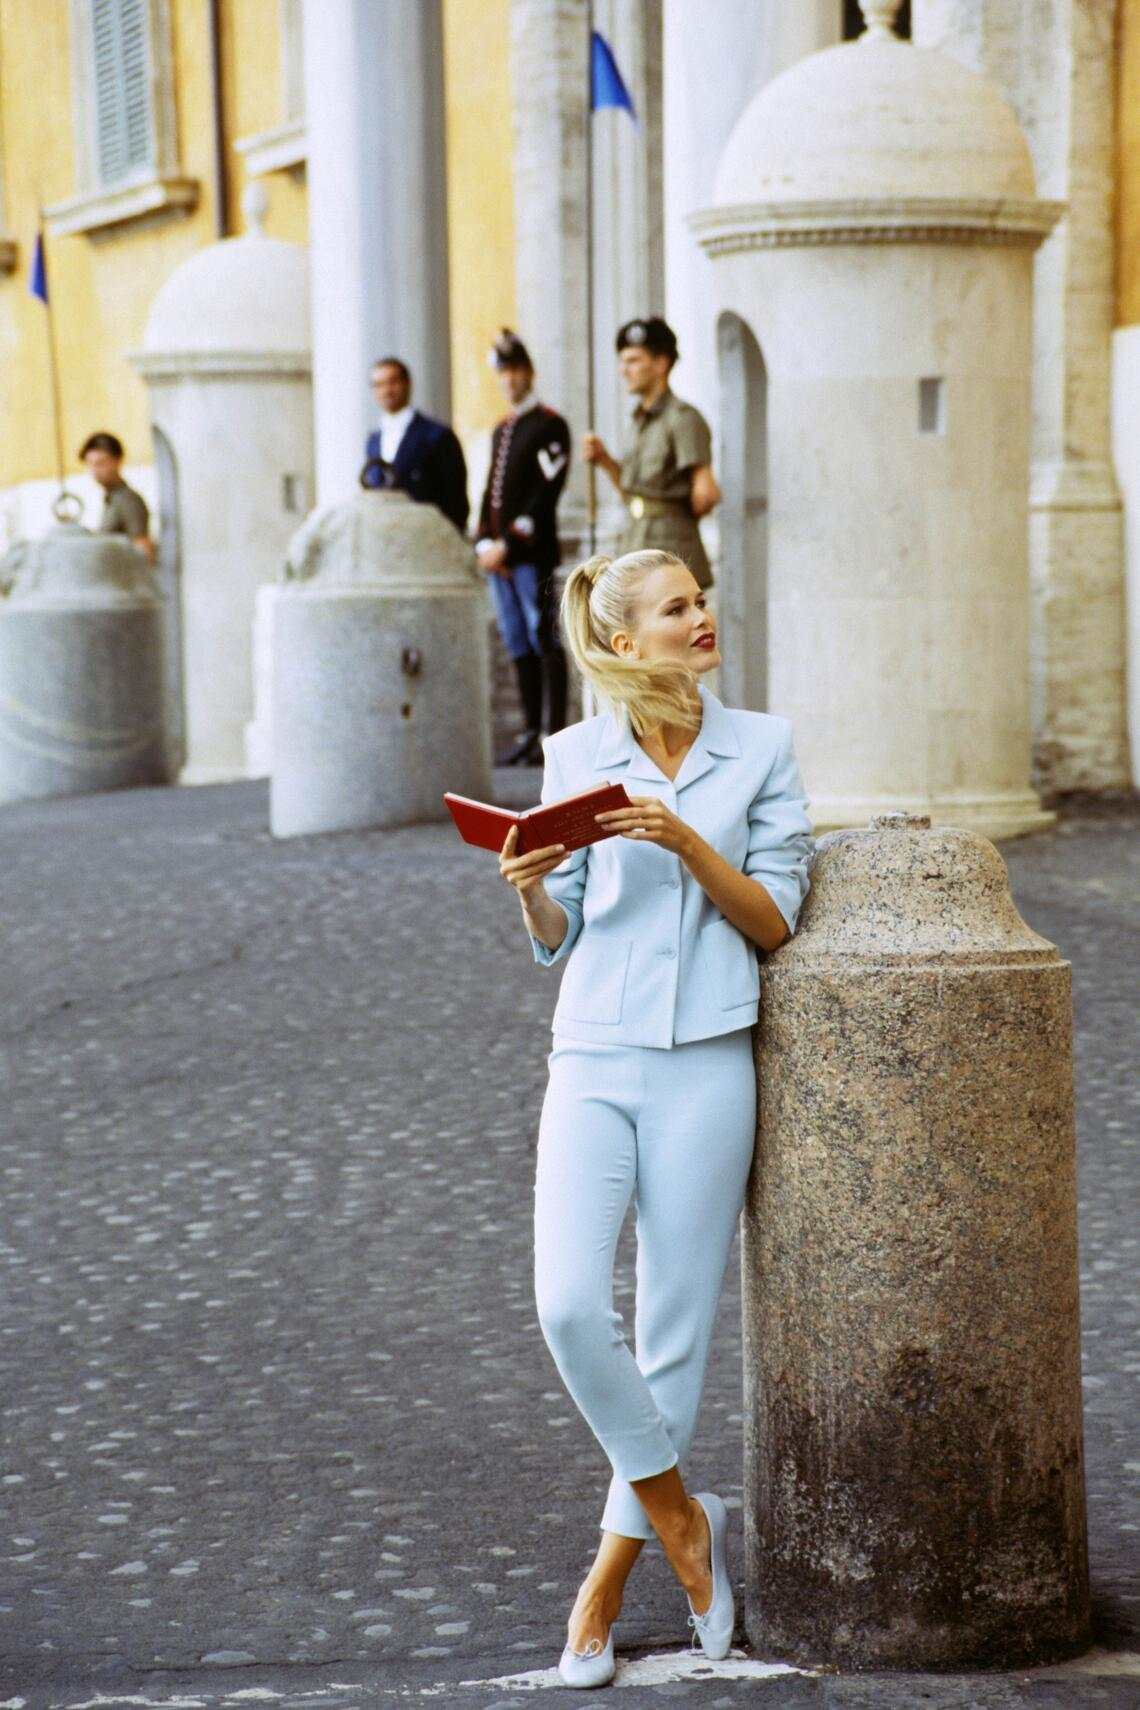 ITALY - DECEMBER 1:  Model Claudia Schiffer, with book on Roman street, wearing capri pants and spencer-style jacket in aqua blue, by Mark Eisen  CREDIT MUST READ: Arthur Elgort/Conde Nast via Getty Images. (Photo by Arthur Elgort/Conde Nast via Getty Images)